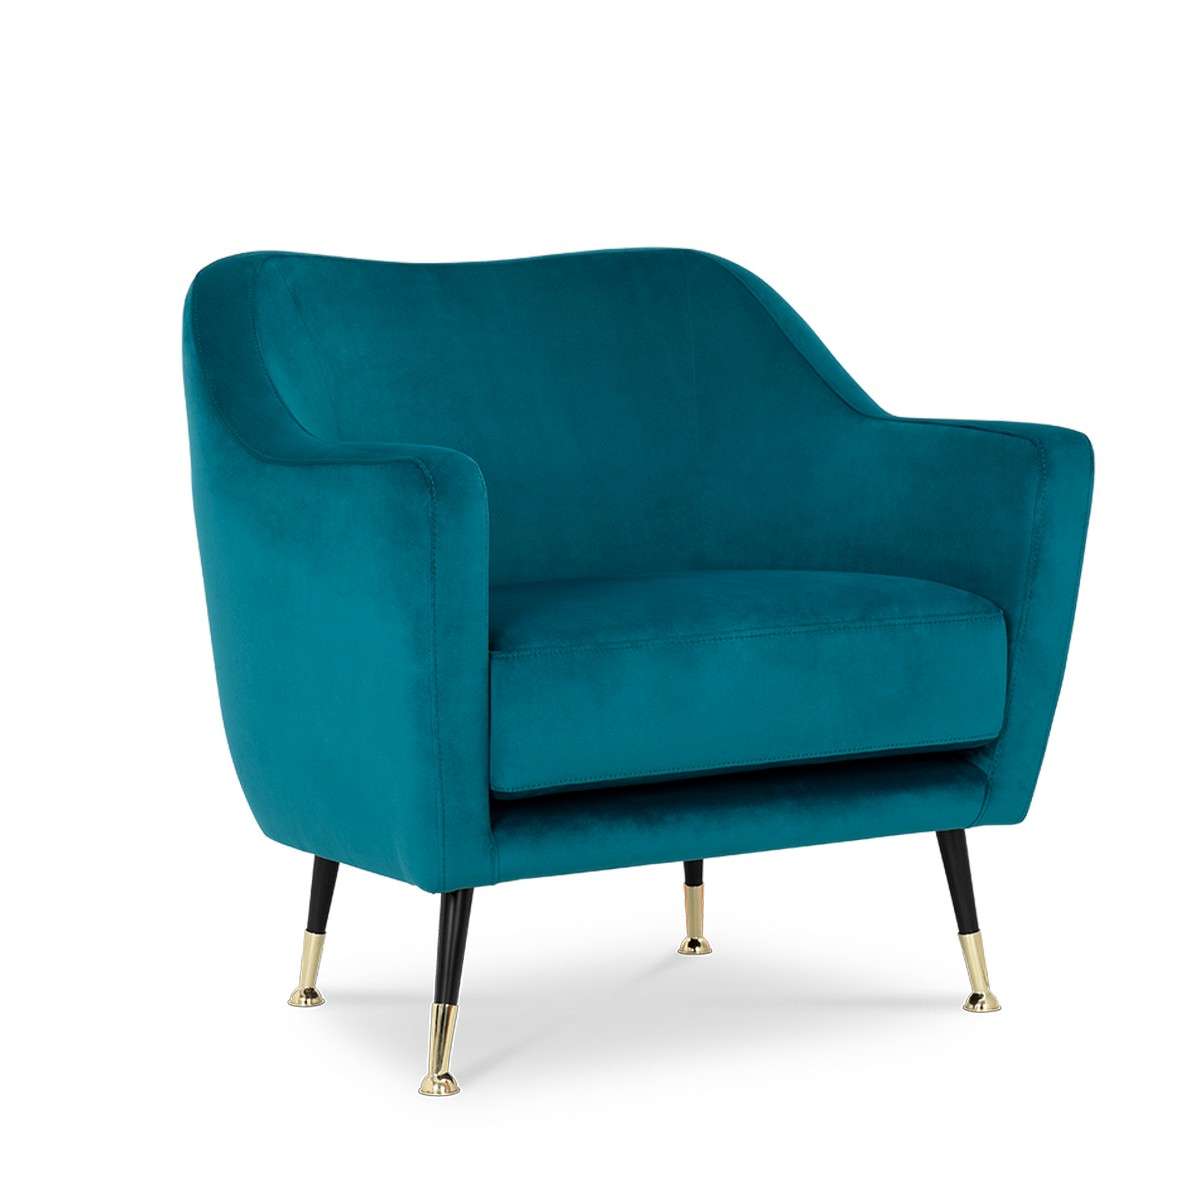 Furniture Trends By Top Luxury Brands That Will Take You to 2020! furniture trends for 2020 Furniture Trends By Top Luxury Brands That Will Take You to 2020! 11